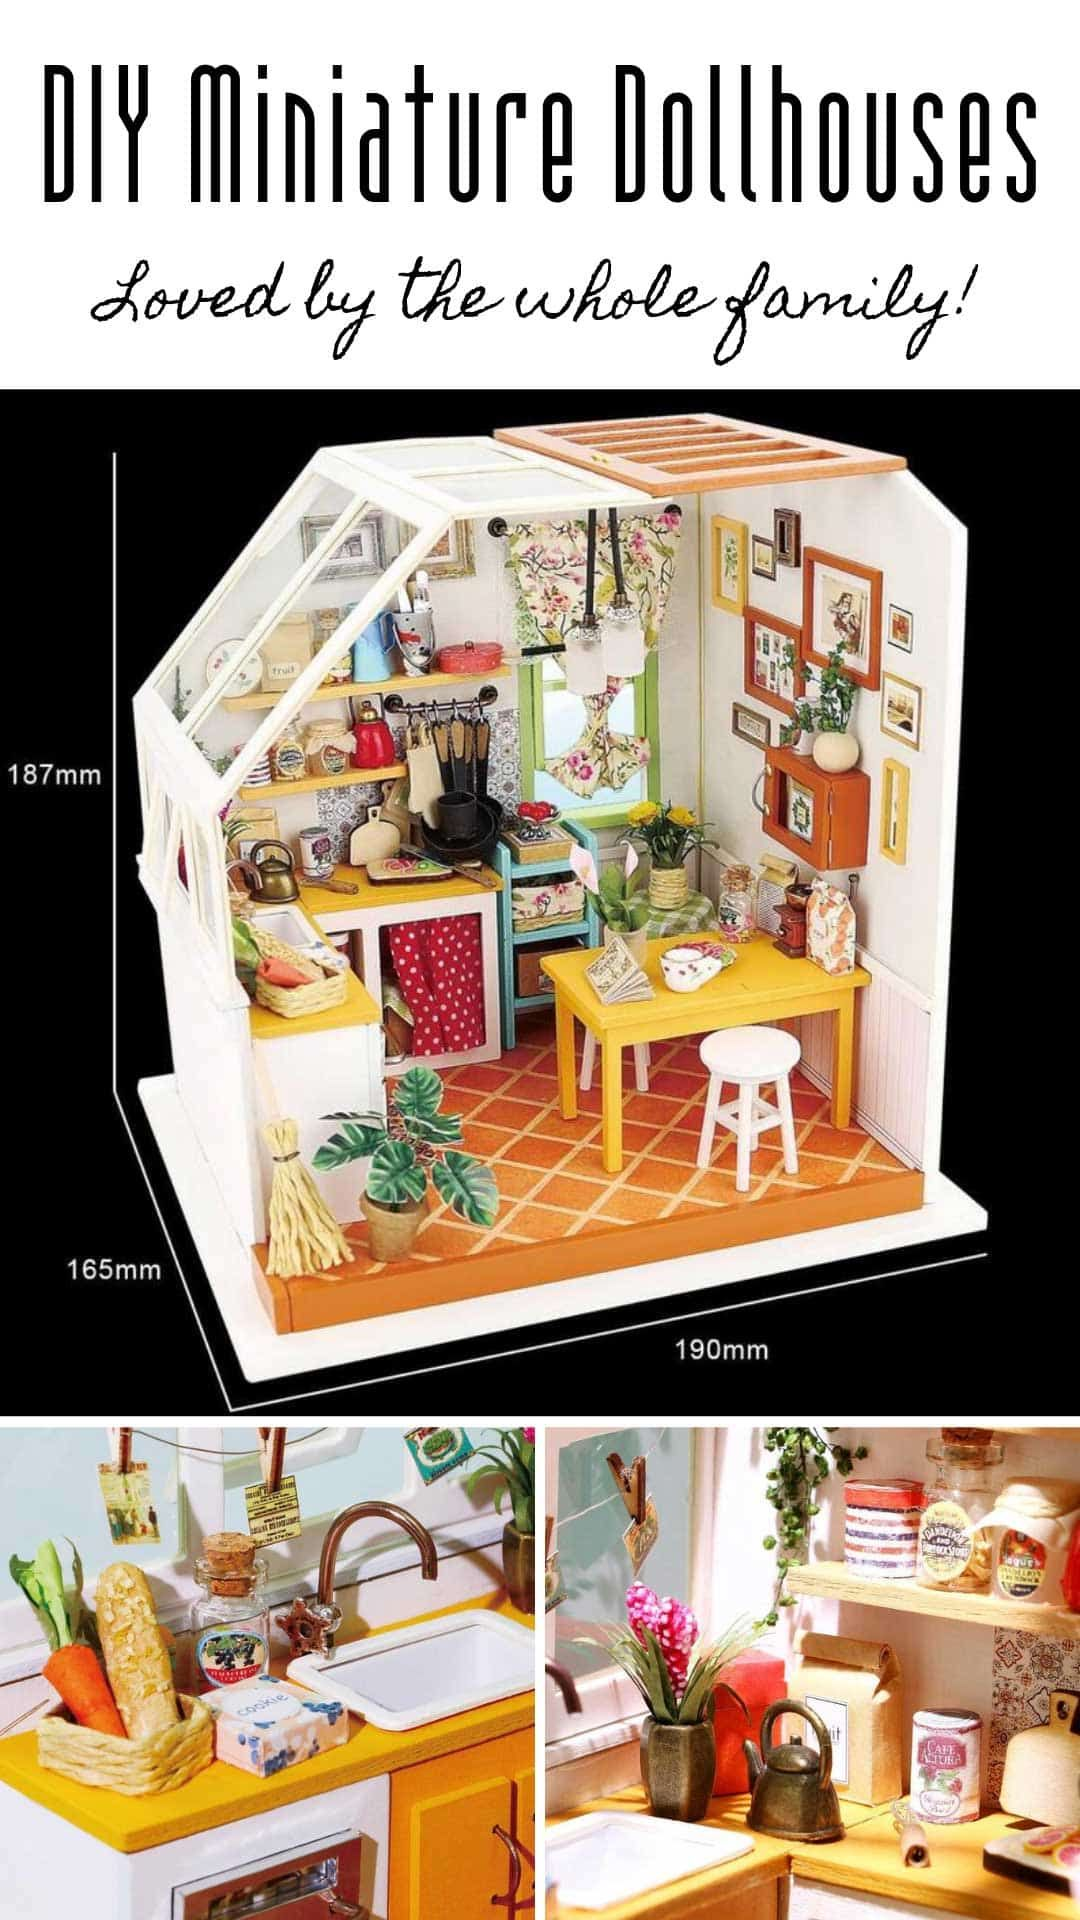 Build your own diy miniature dollhouse kits you need to